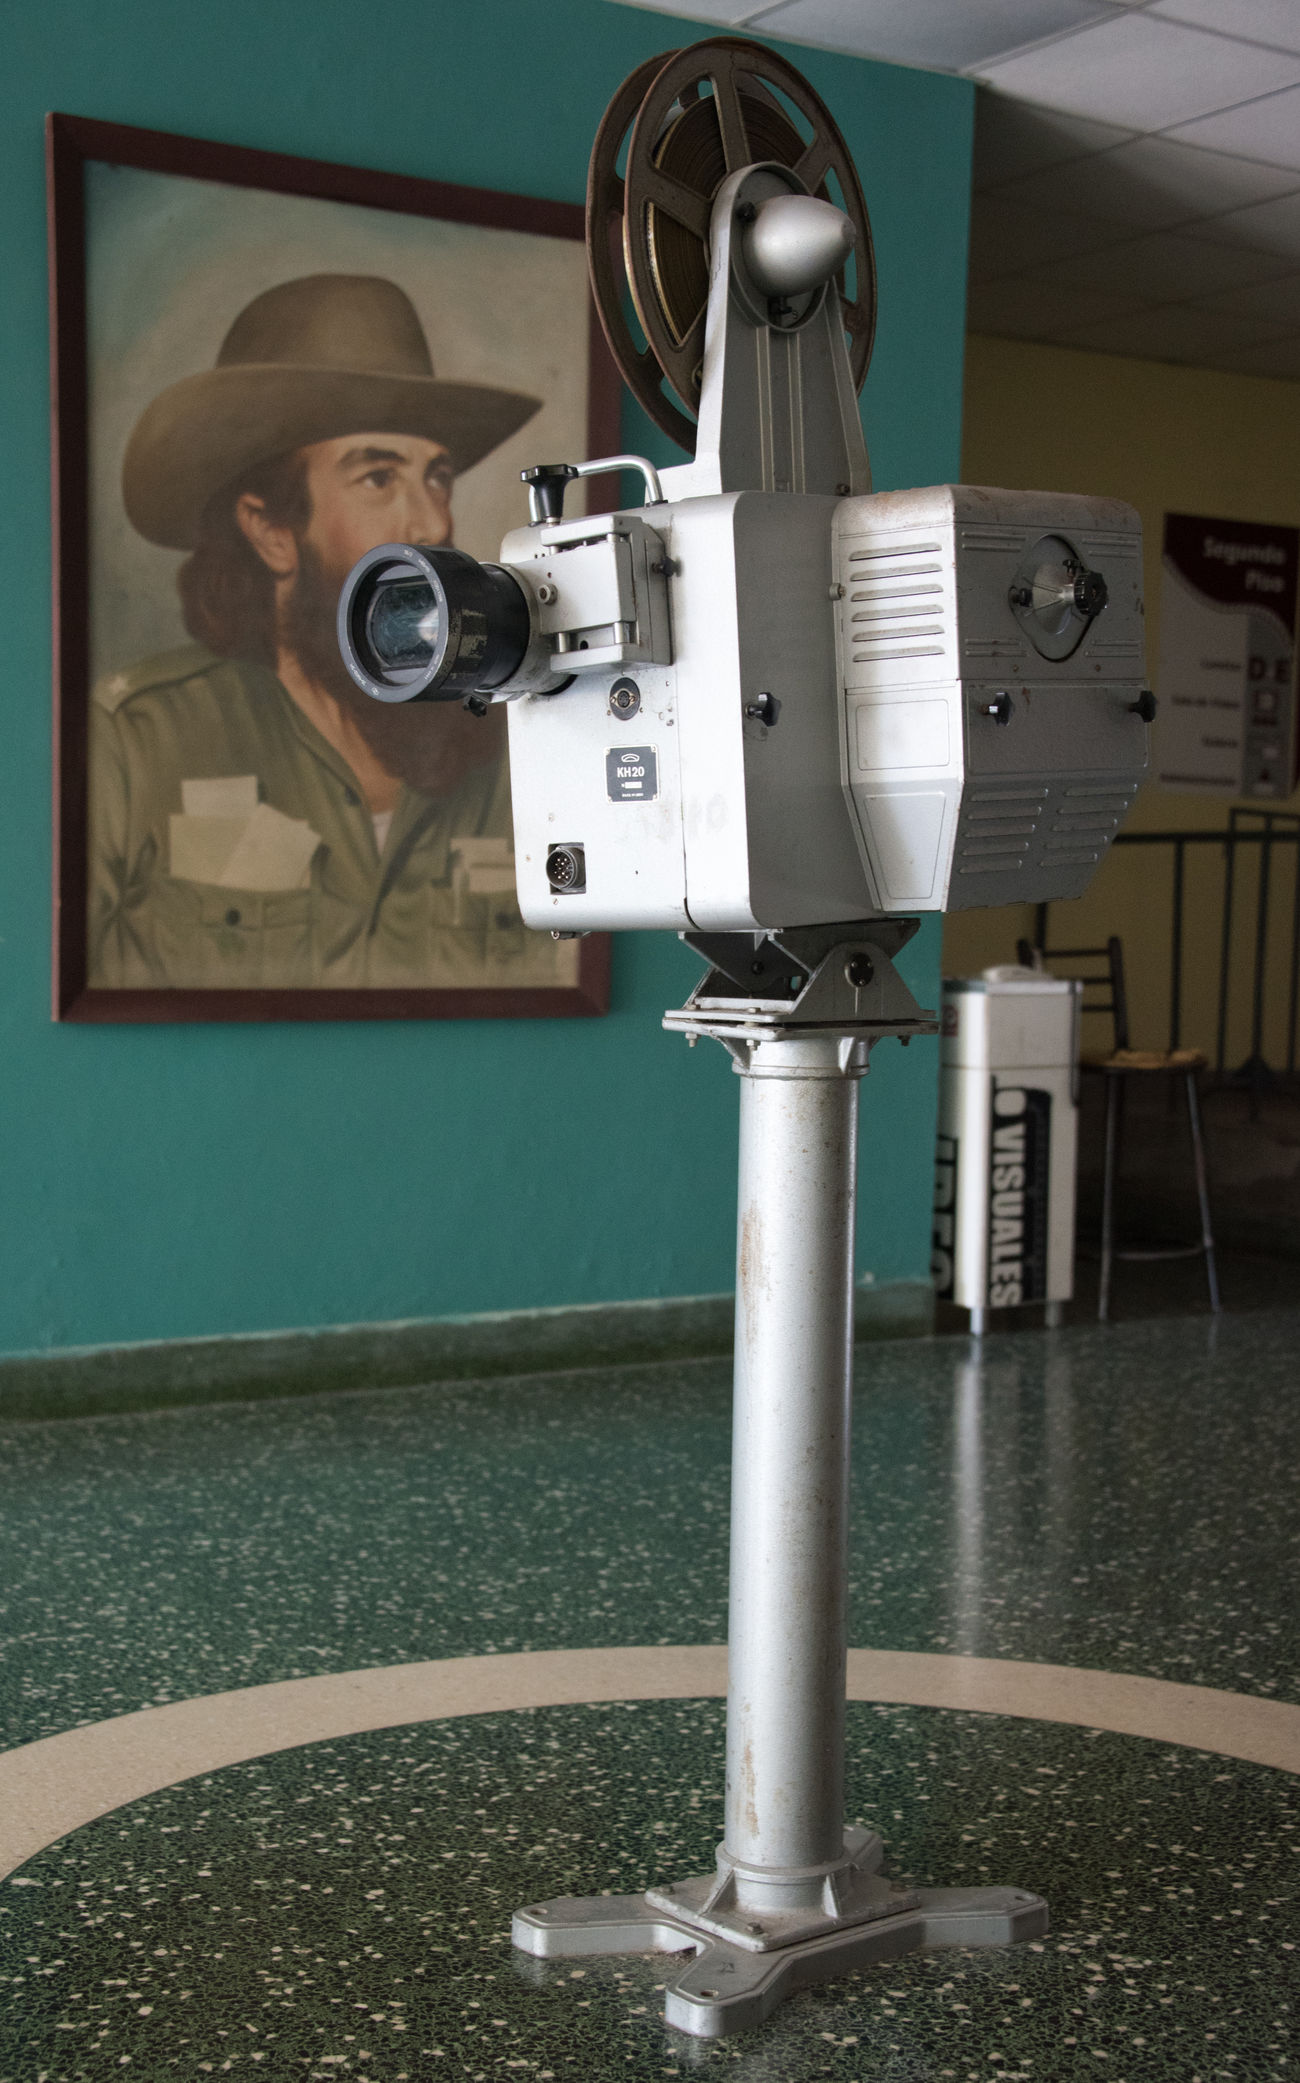 Camilo Cienfuegos, Cinema Cuba Day Entrance Equipment Hall Historic Movie Theater National Monument Old Projection Santa Clara Santa Clara Cuba Sightseeing Vintage